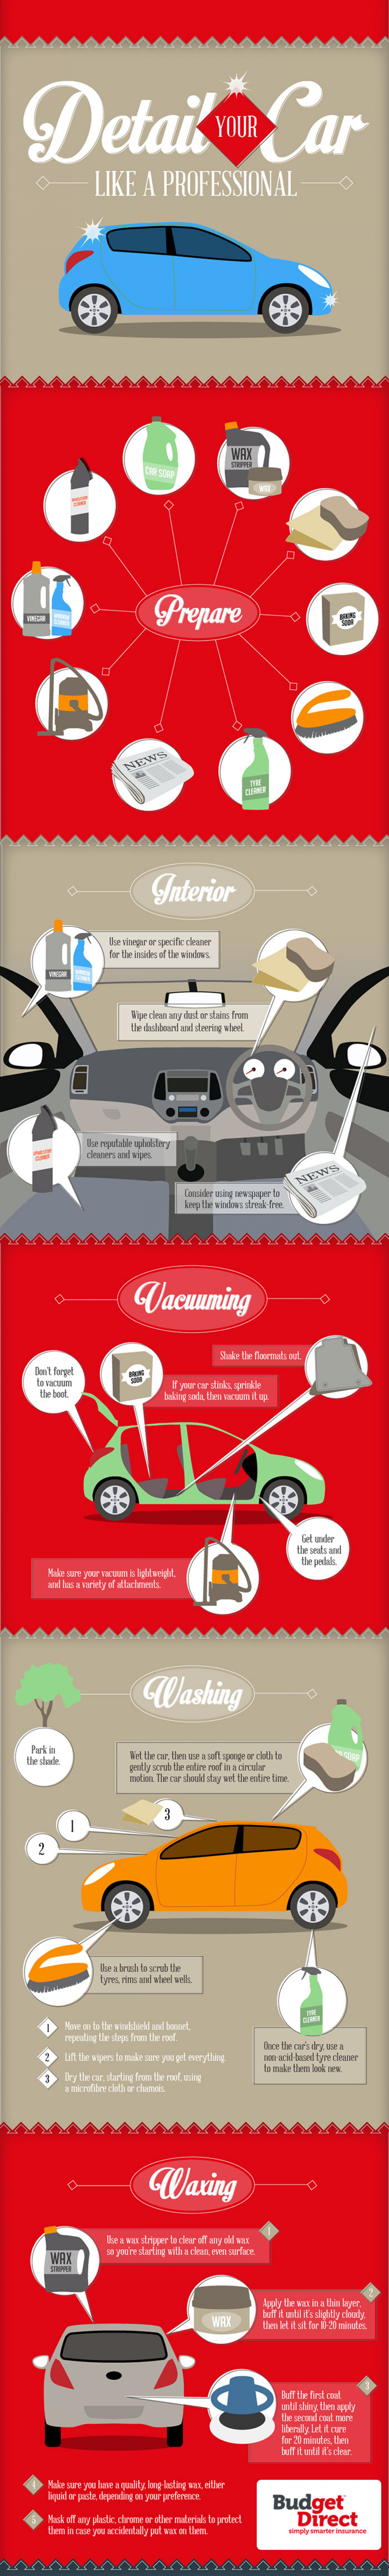 Detail Your Car Like a Professional Infographic